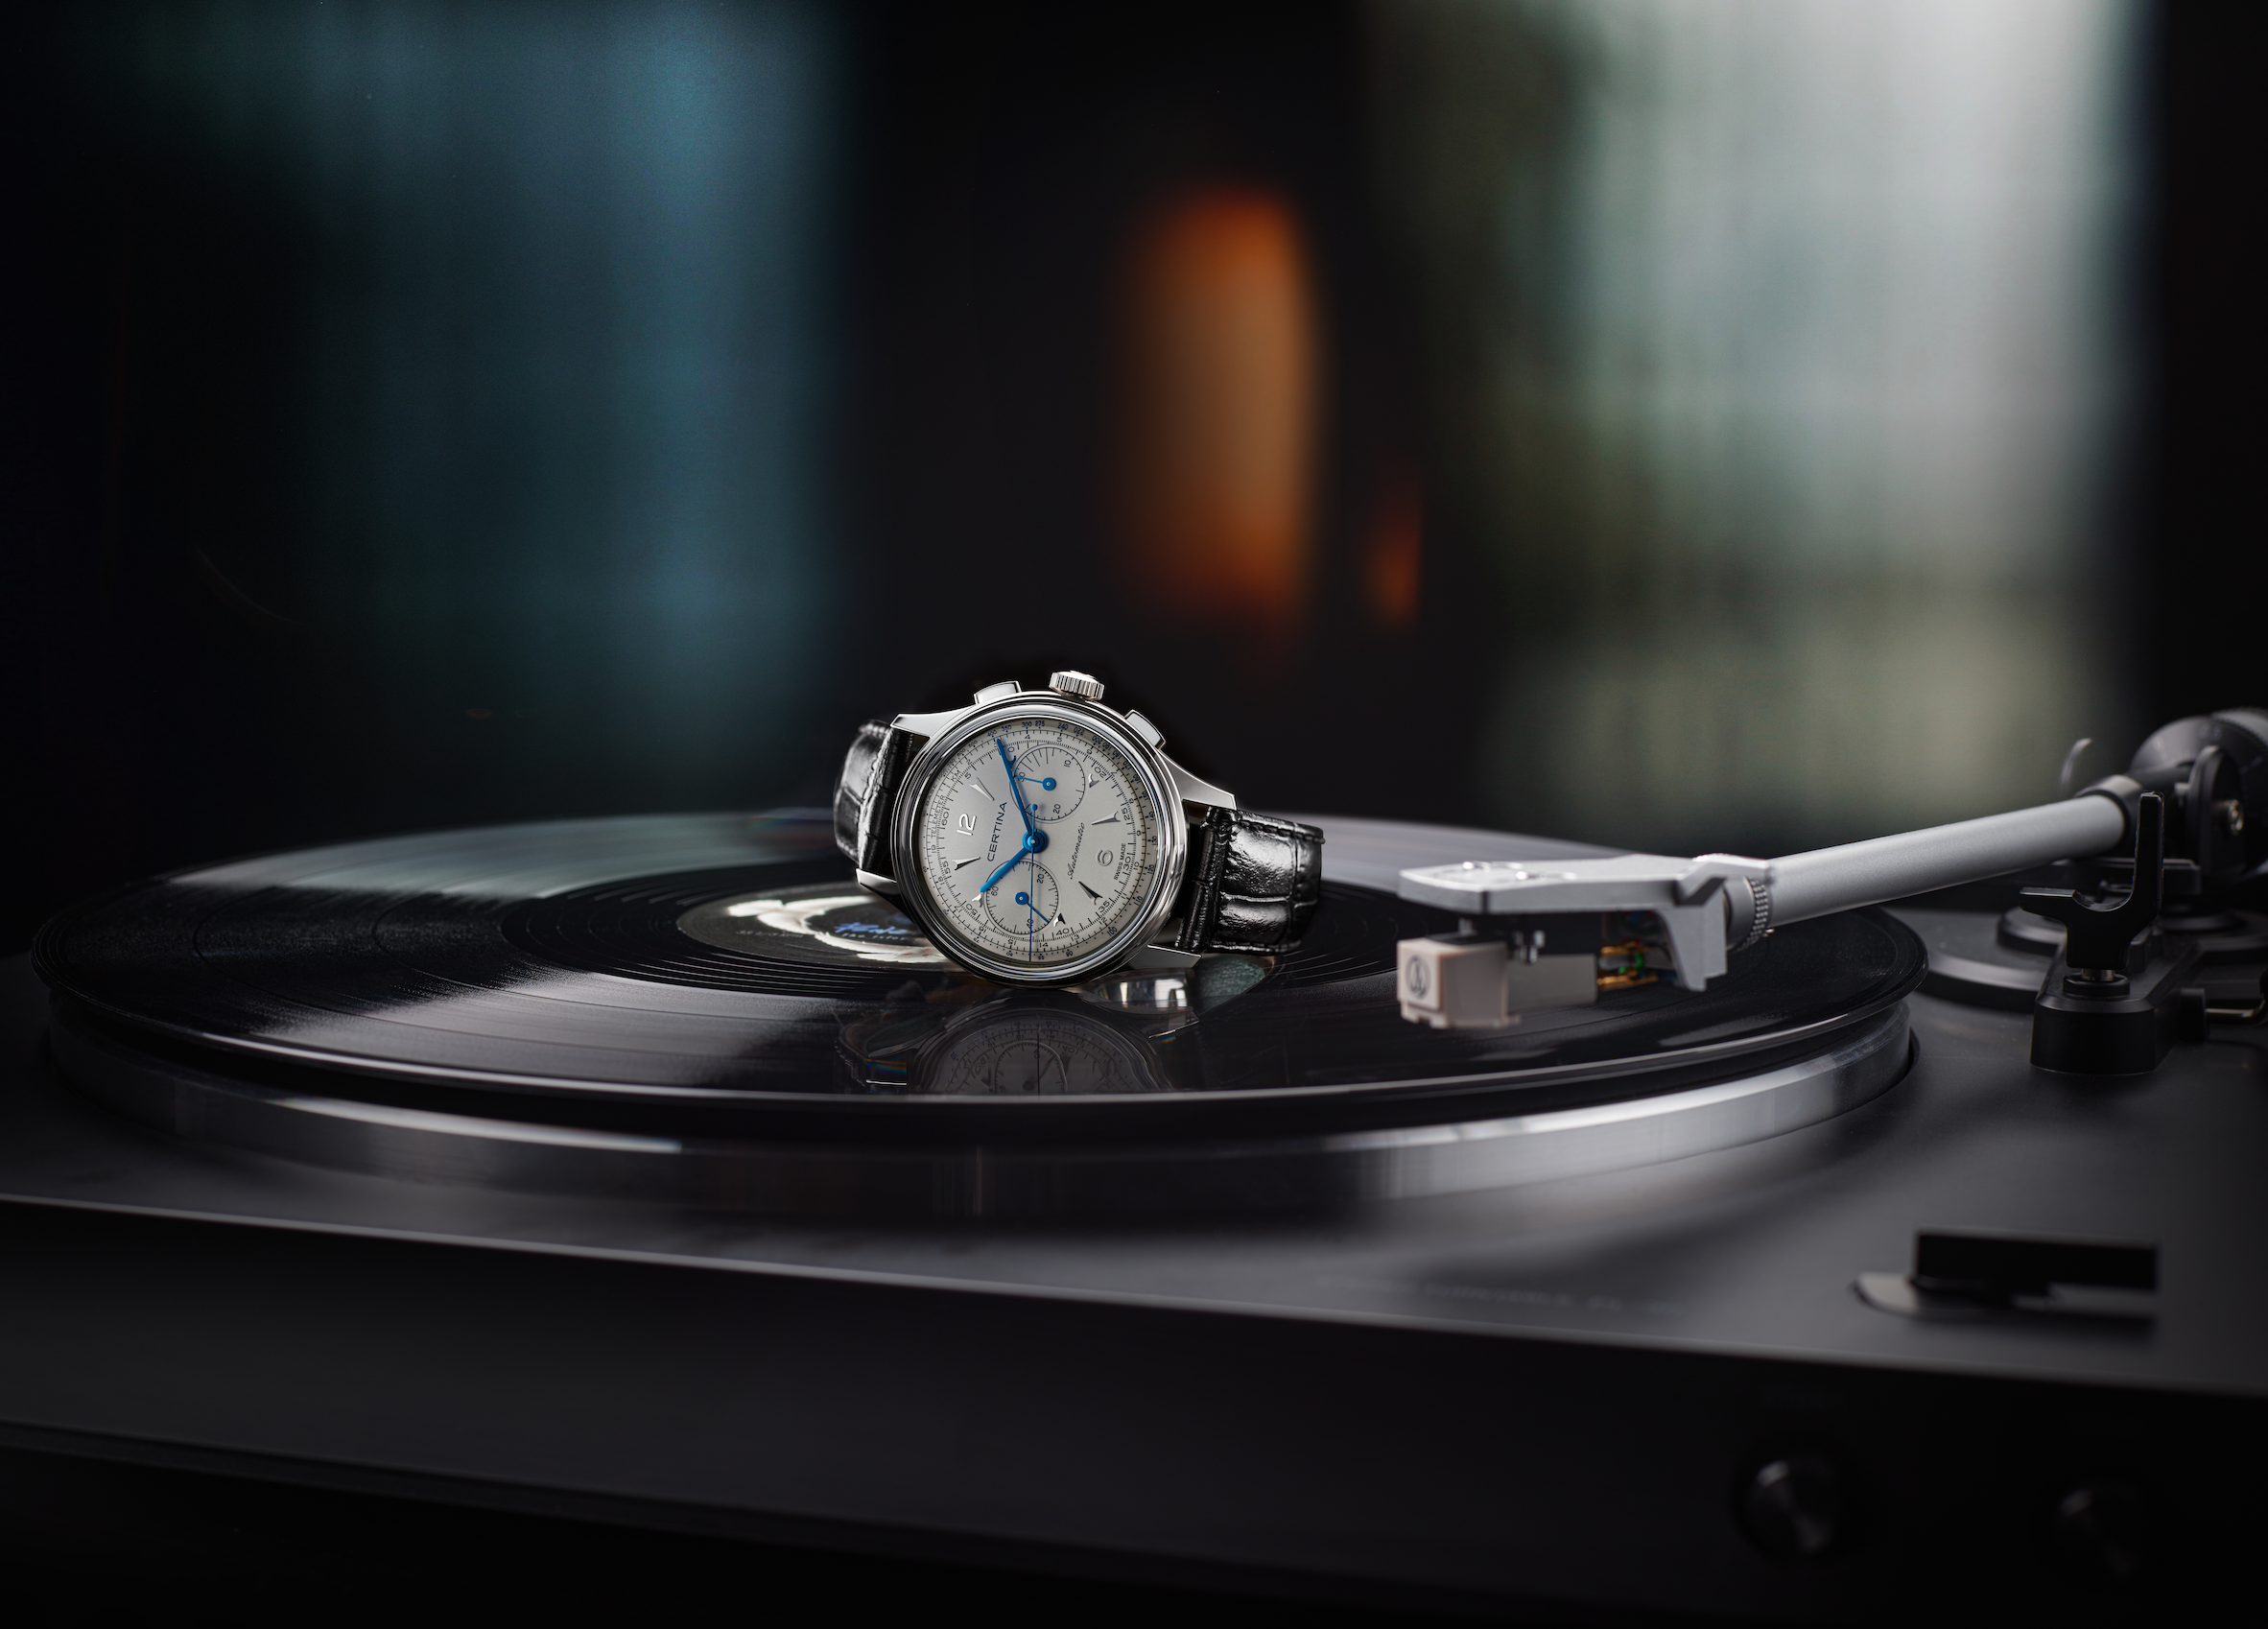 DS Chronograph Automatic: The essence of over 130 years in the art of watchmaking